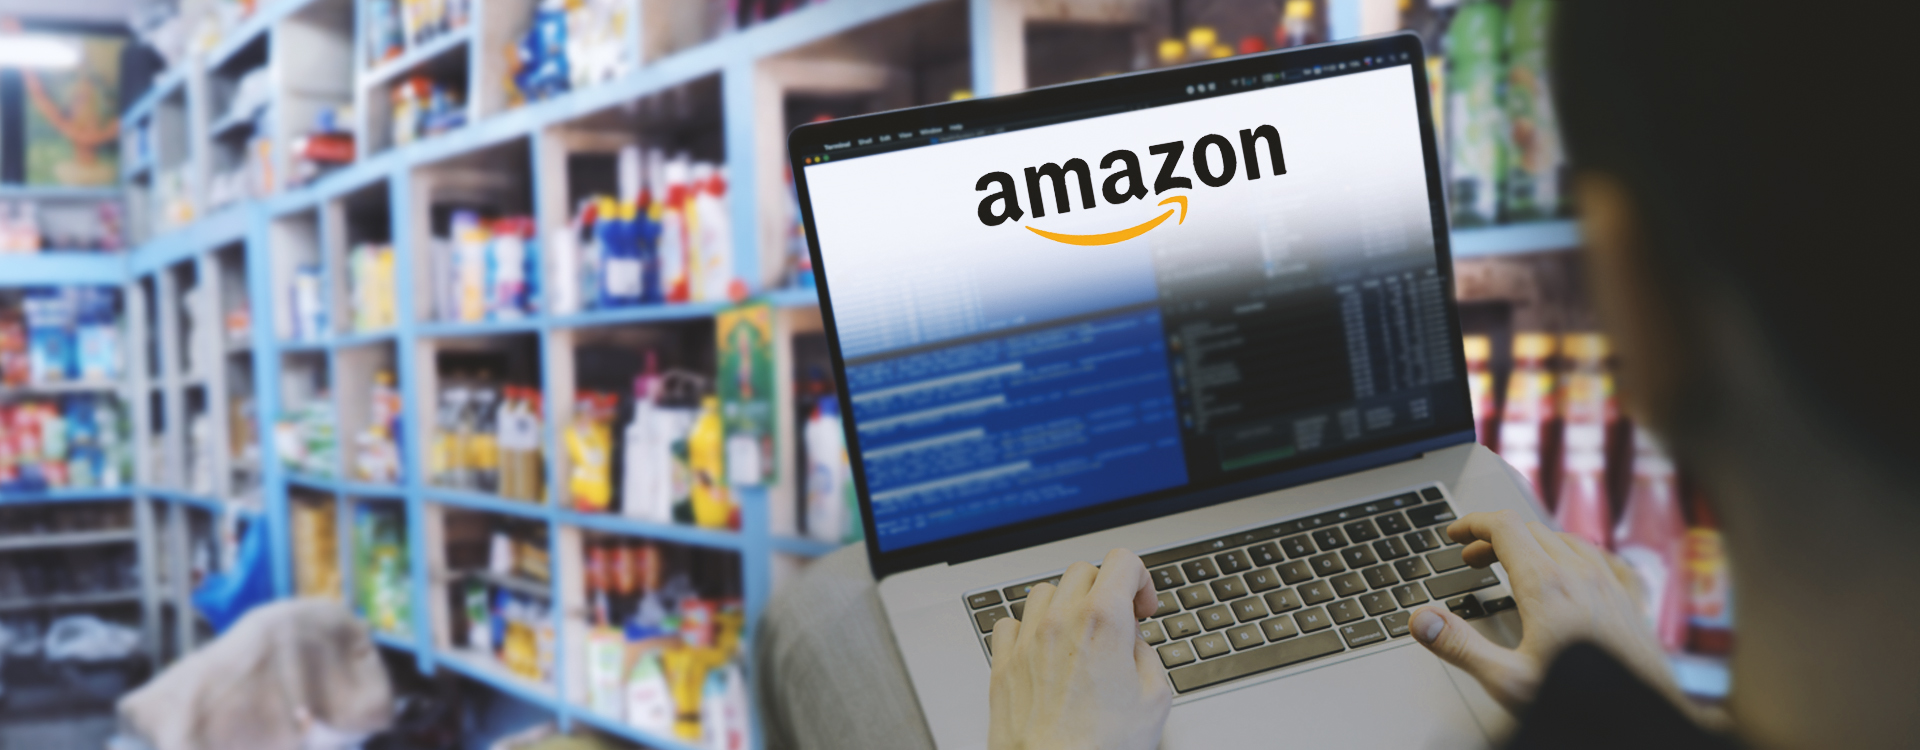 Amazon is entering the Indian retail market with Kirana stores and has acquired retail tech start-up Perpule